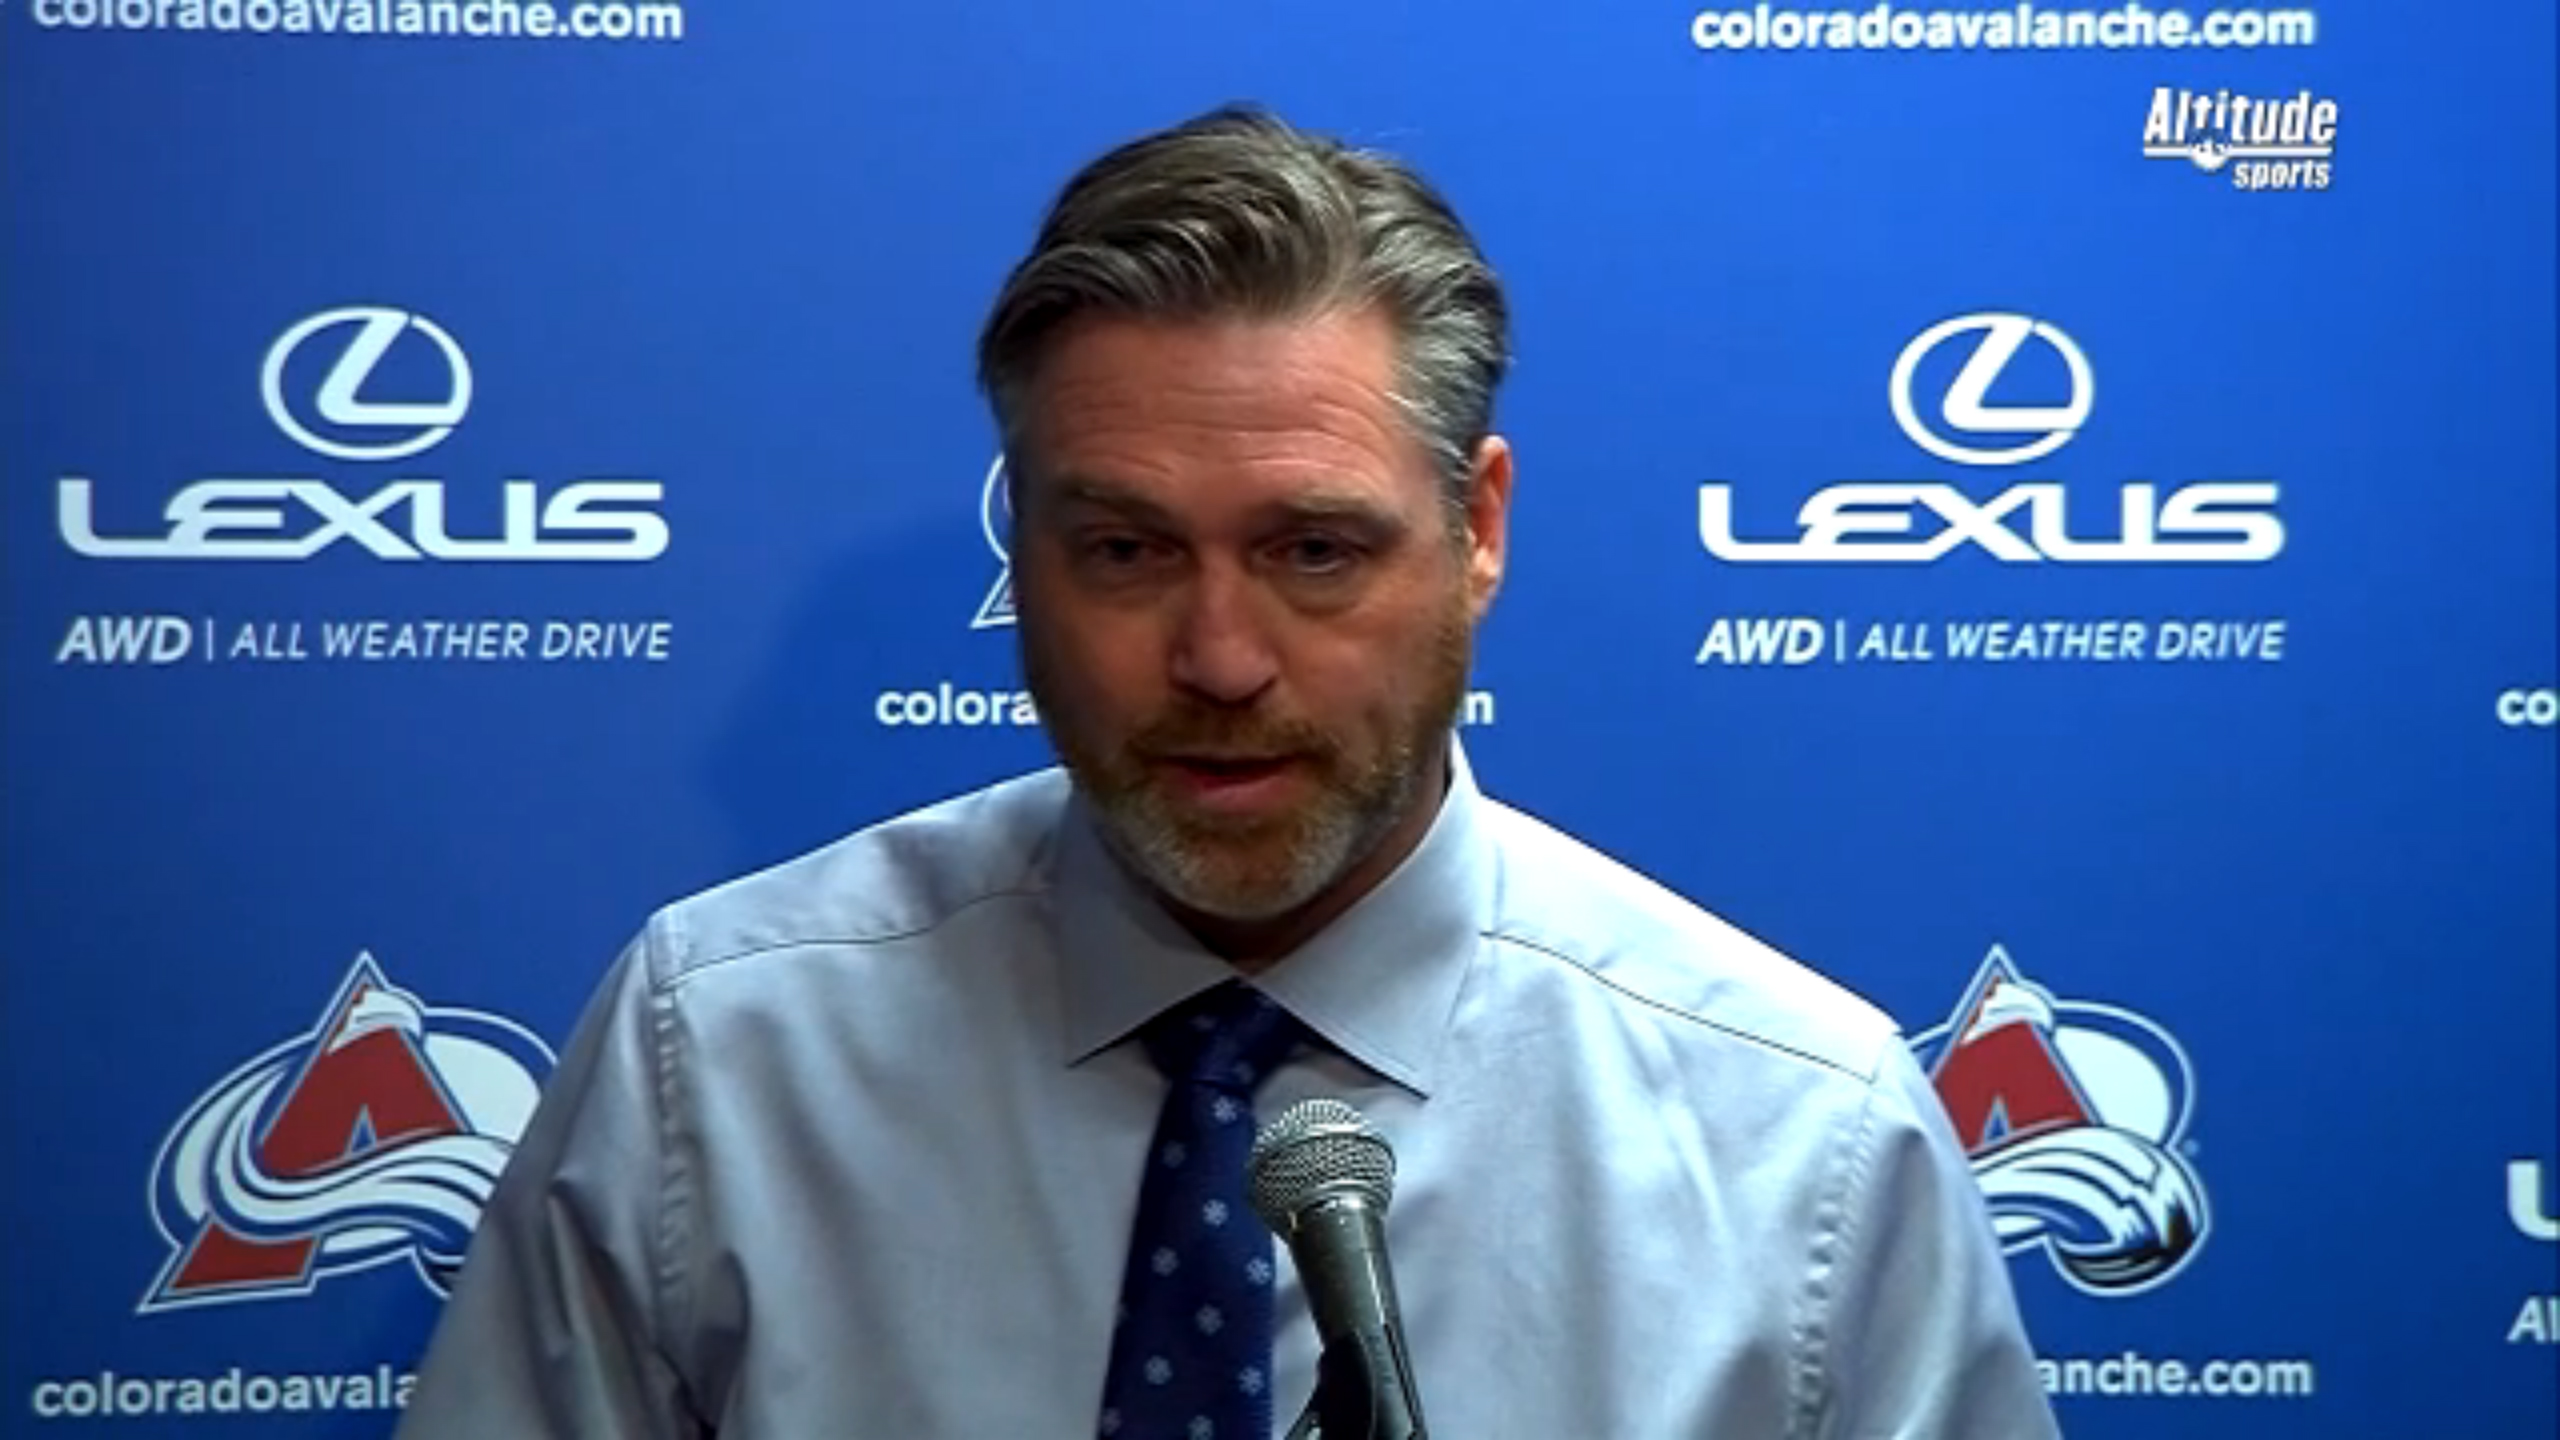 Patrick-Roy-Post-Game-120715.jpg